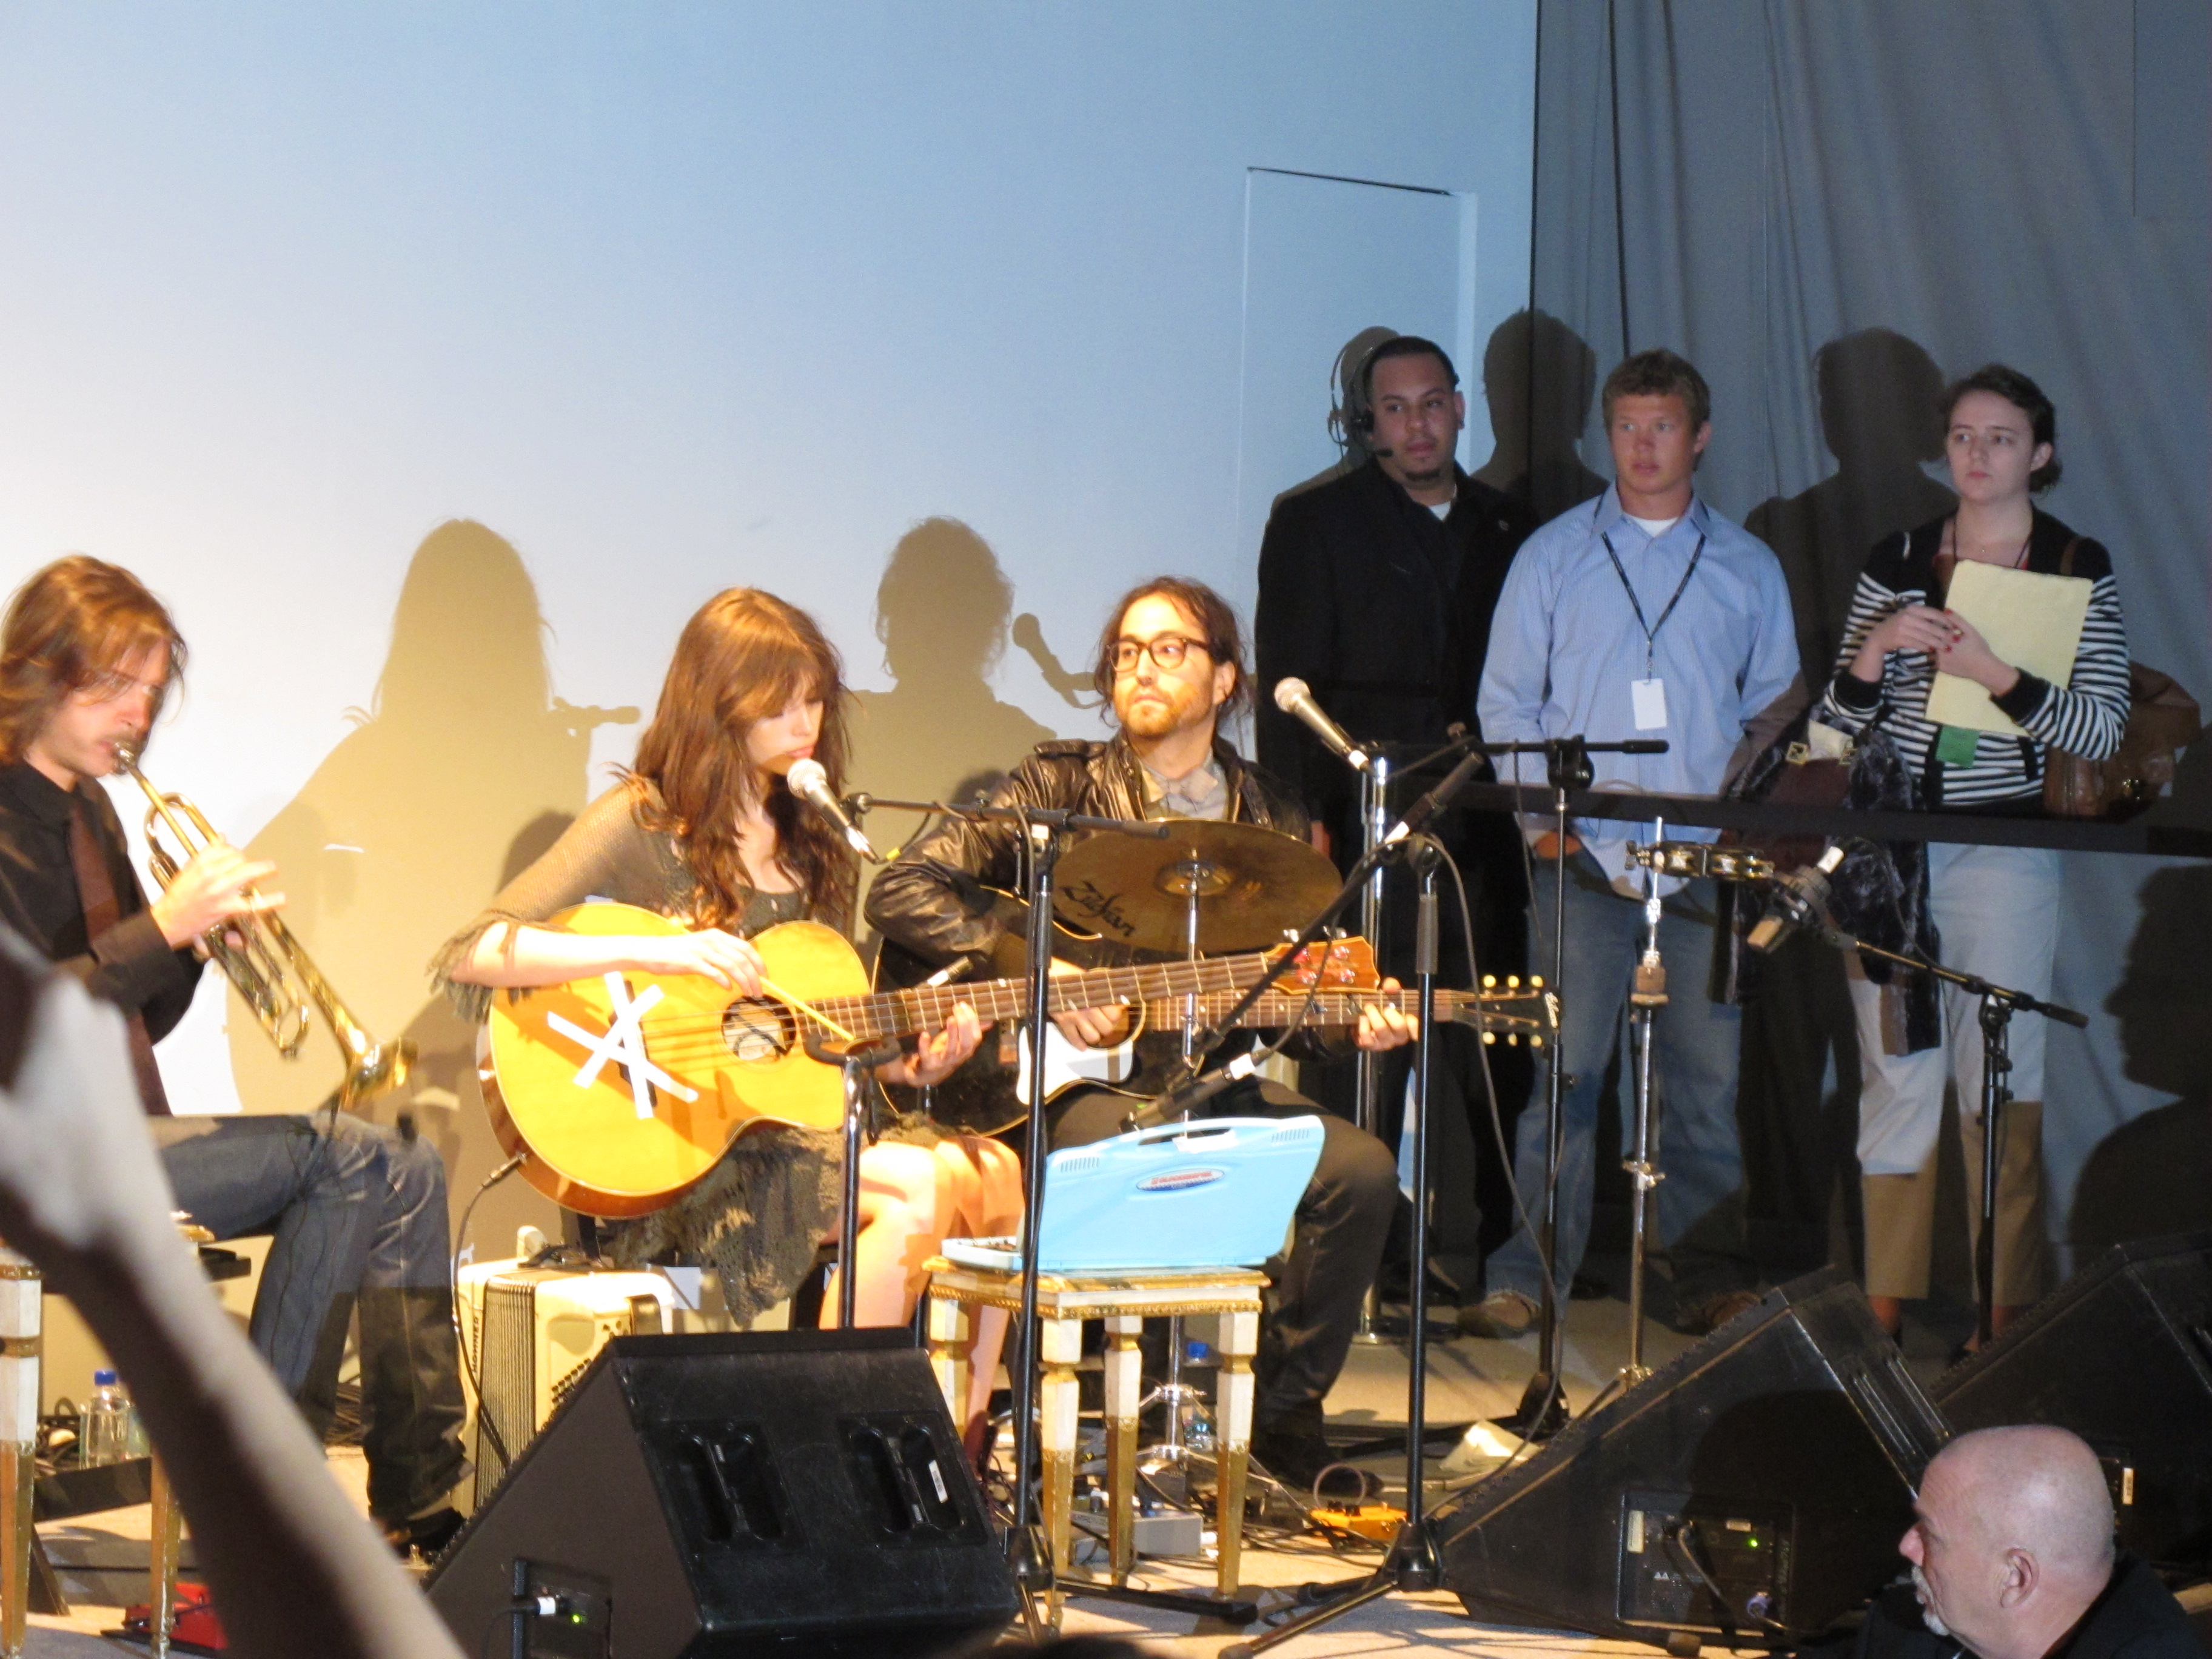 Sean Lennon and Charlotte Kemp Muhl performed at Odd Molly.